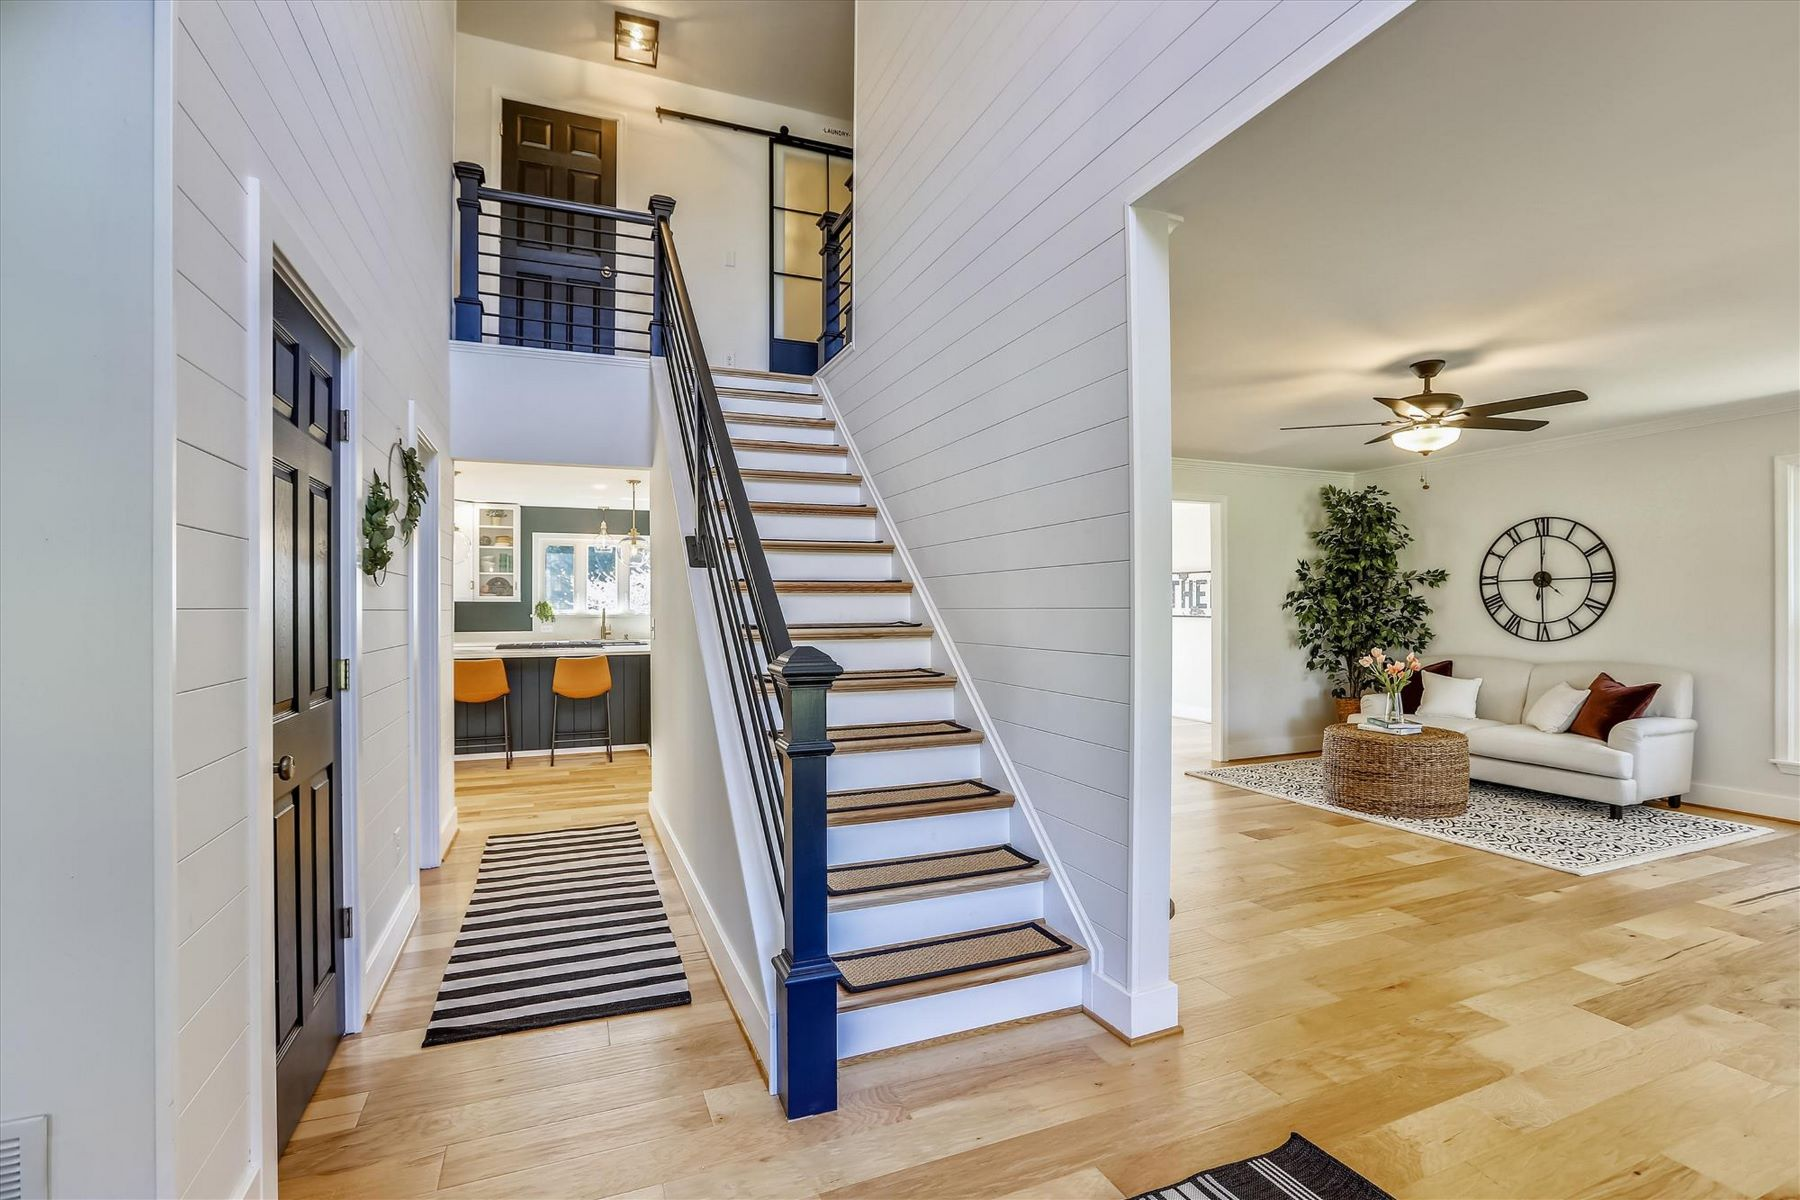 Single Family Homes for Sale at Fully Renovated Centreville Colonial 719 Burrisville Road Centreville, Maryland 21617 United States